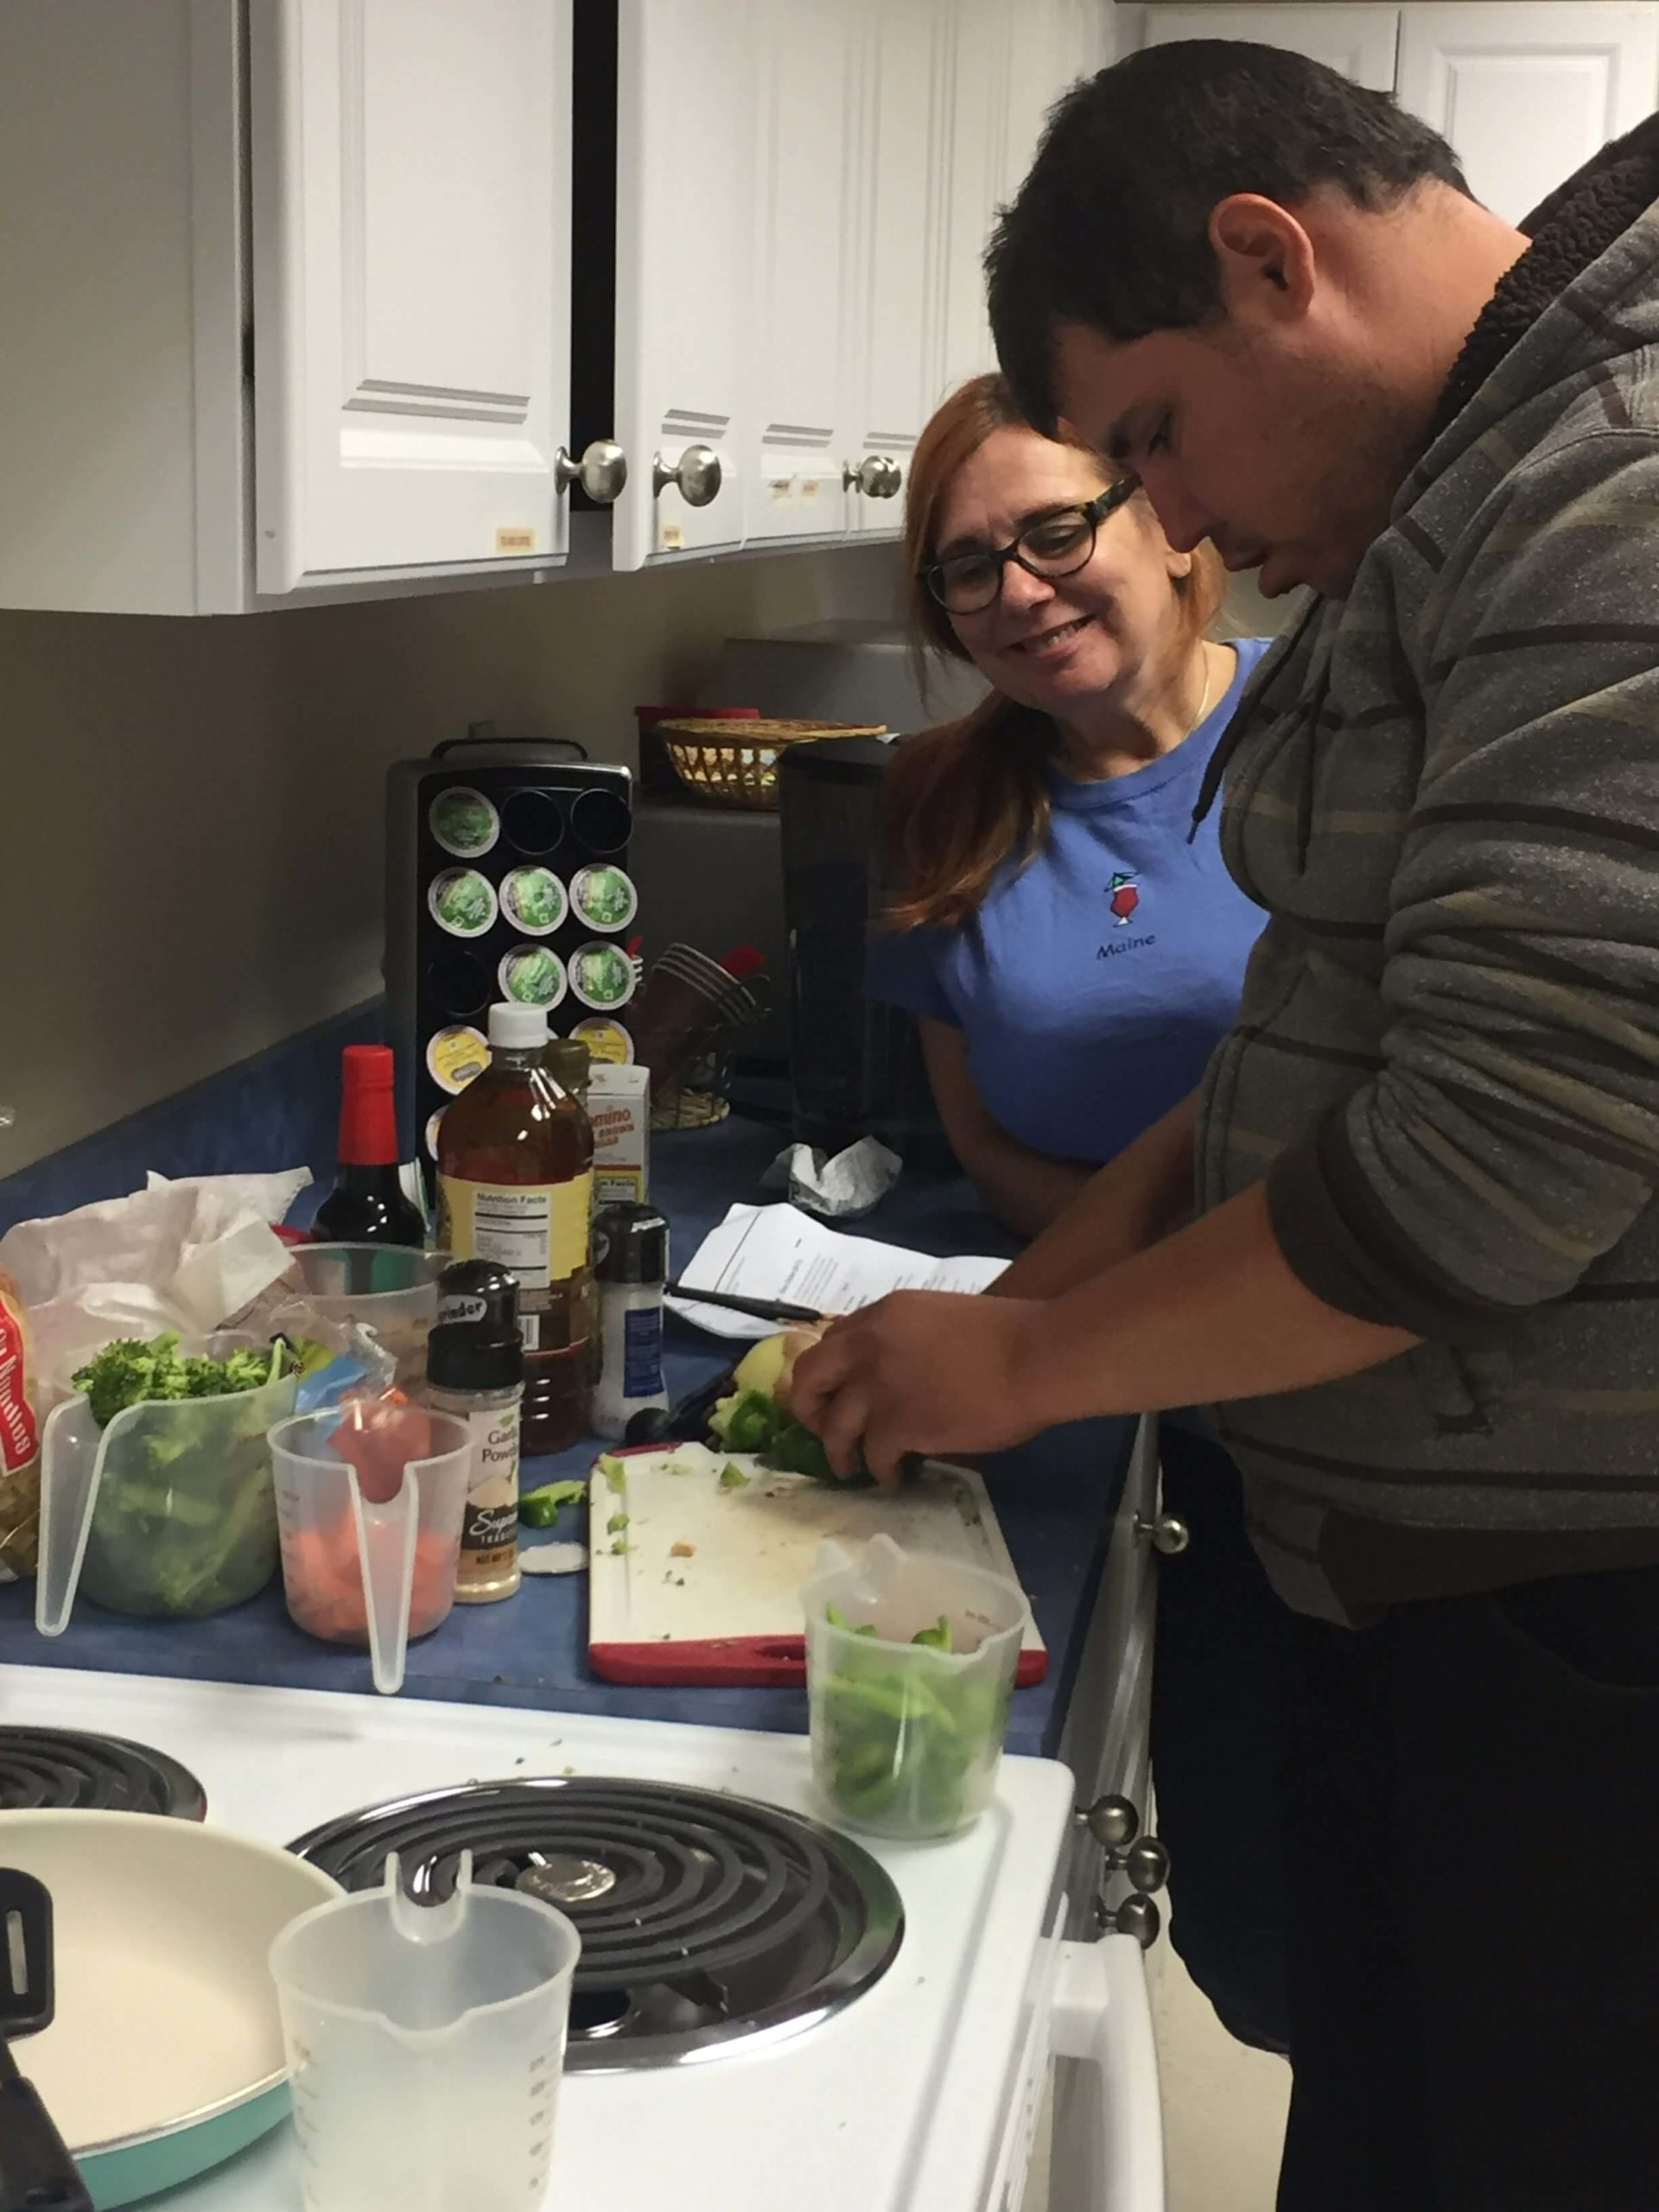 Thrive participants learning cooking skills